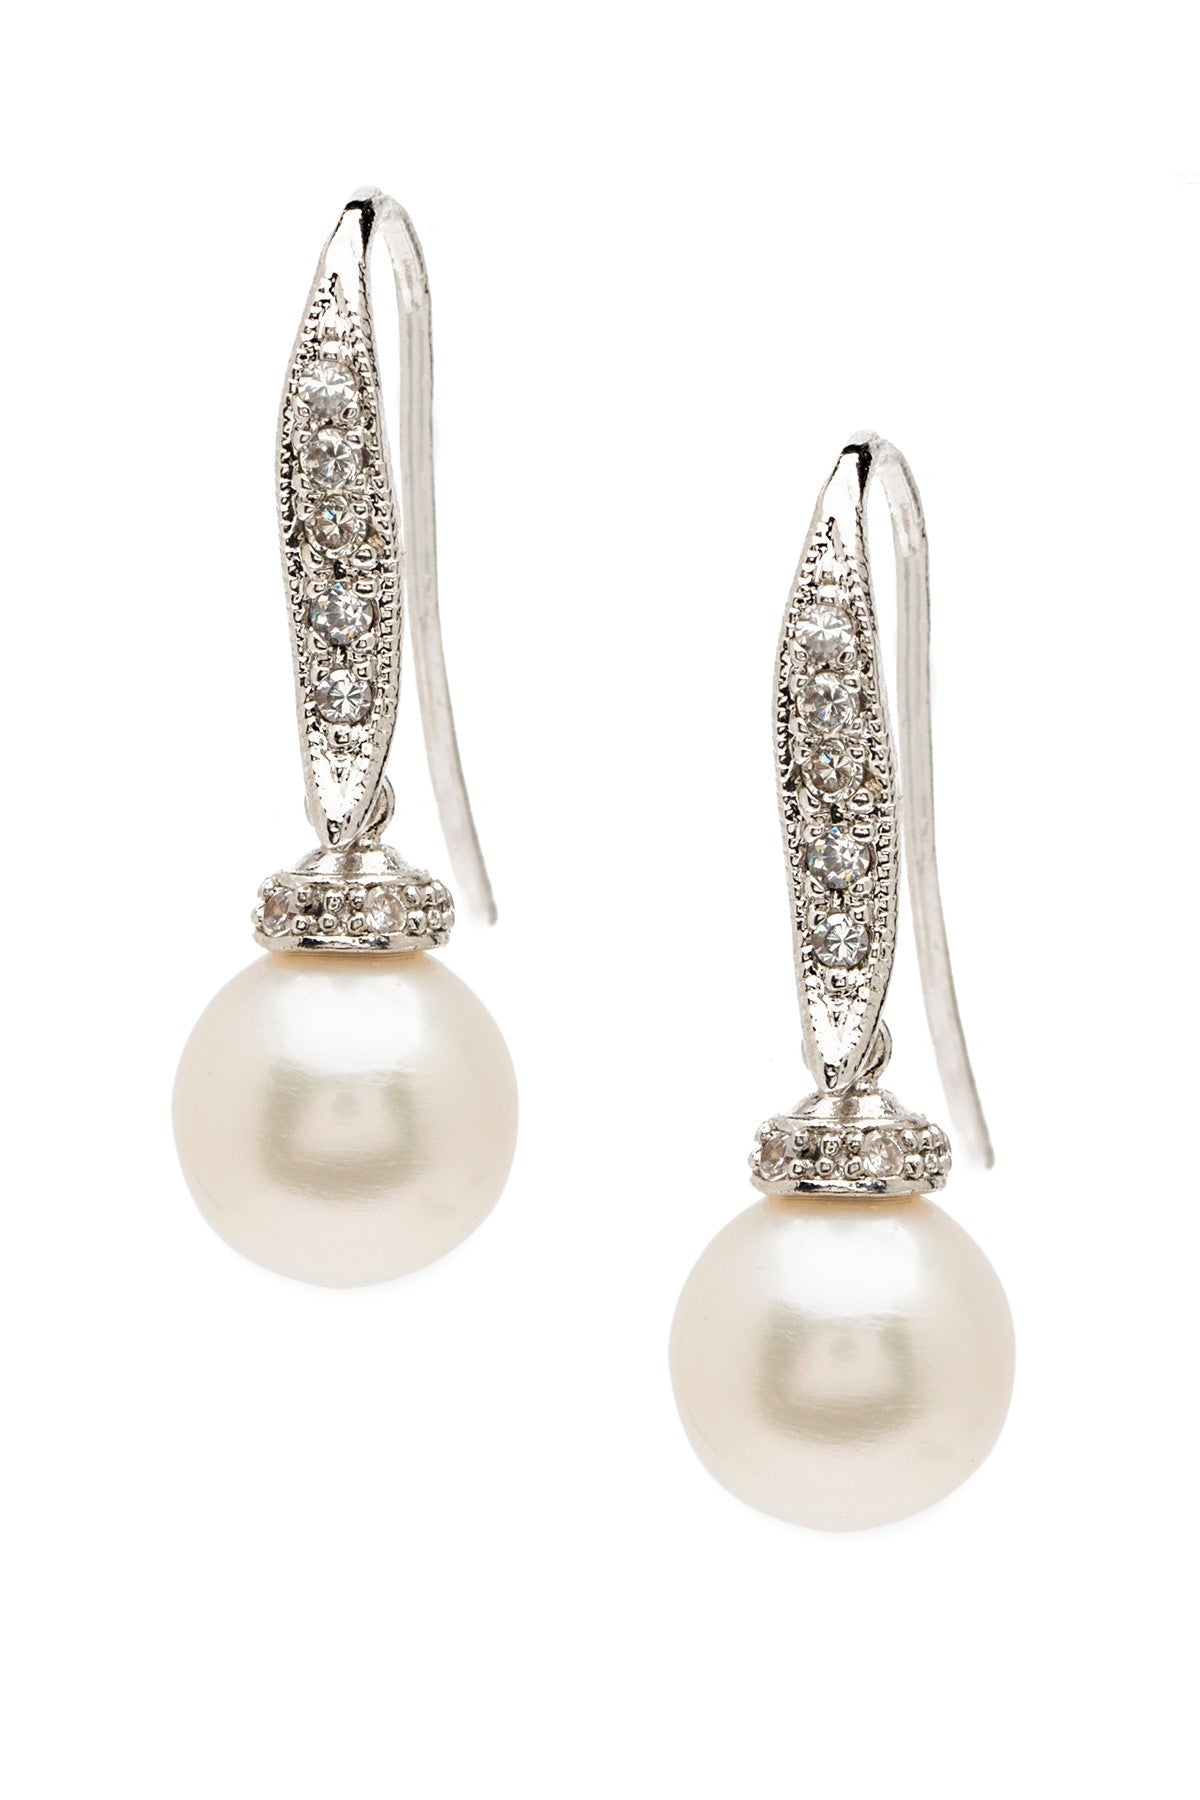 earrings stud white akoya pearls pearl yg jewellery